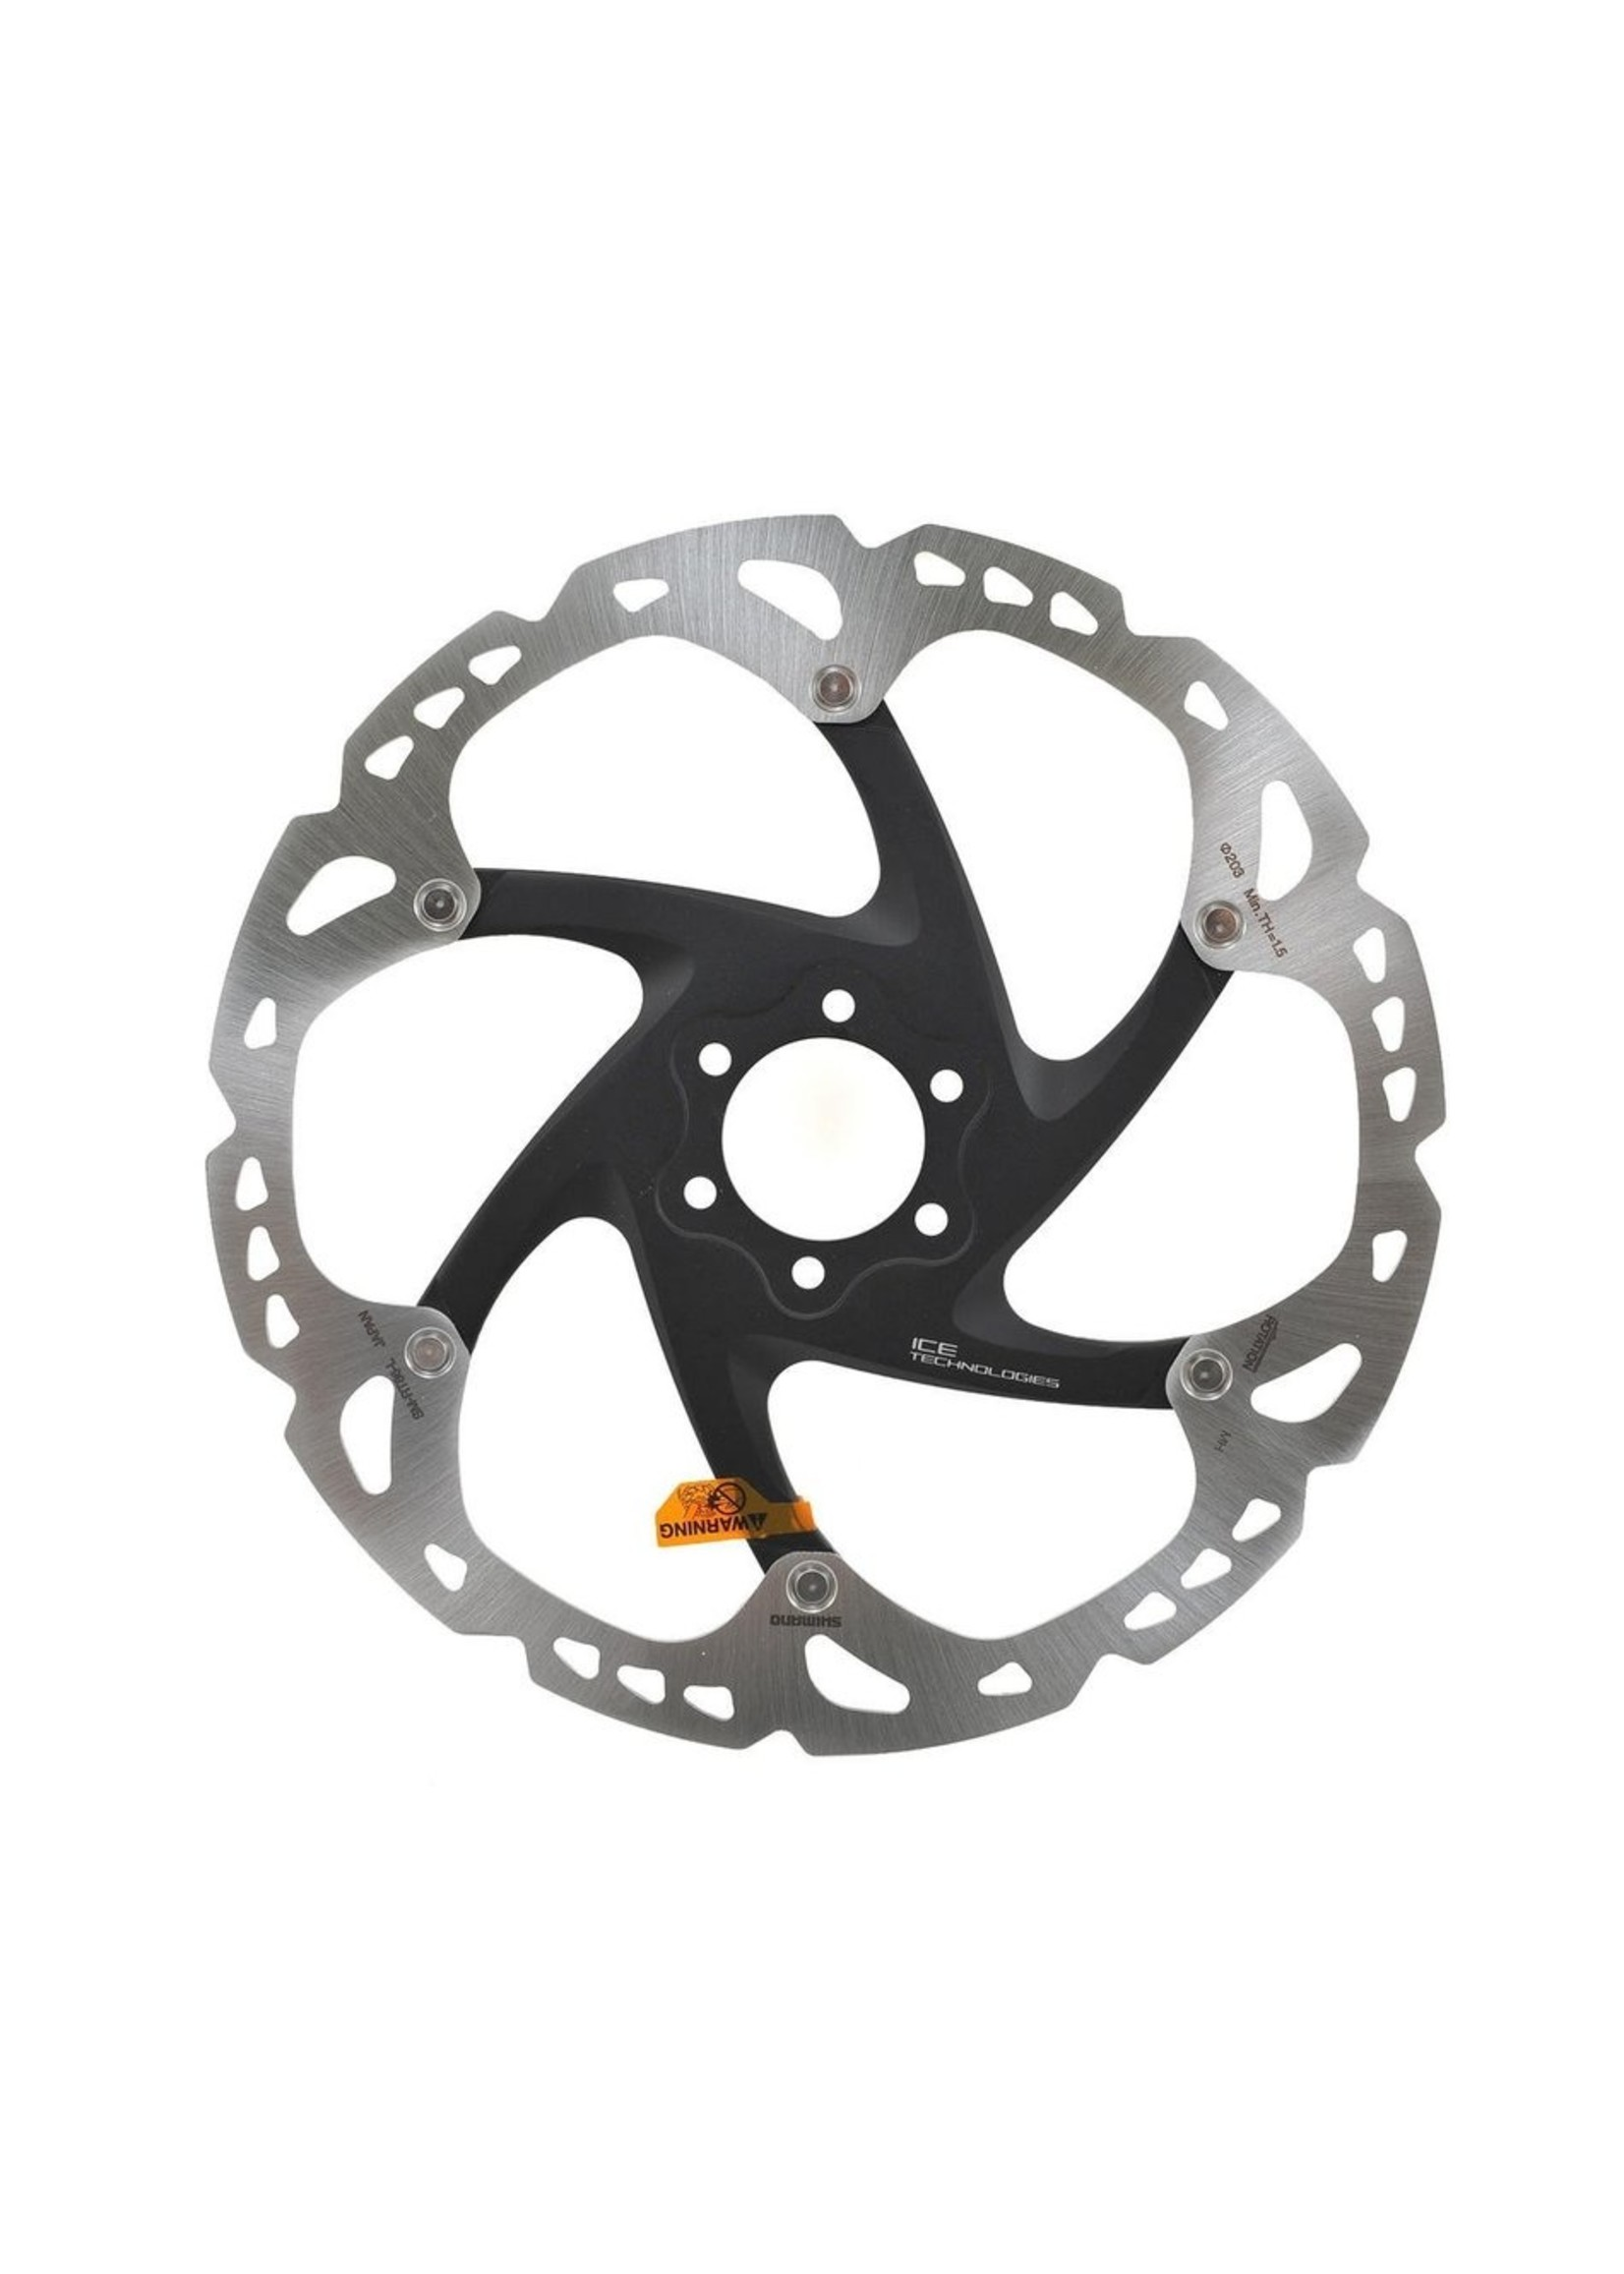 Shimano ROTOR FOR DISC-BRAKE, SM-RT86, L 203MM 6-BOLT TYPE,